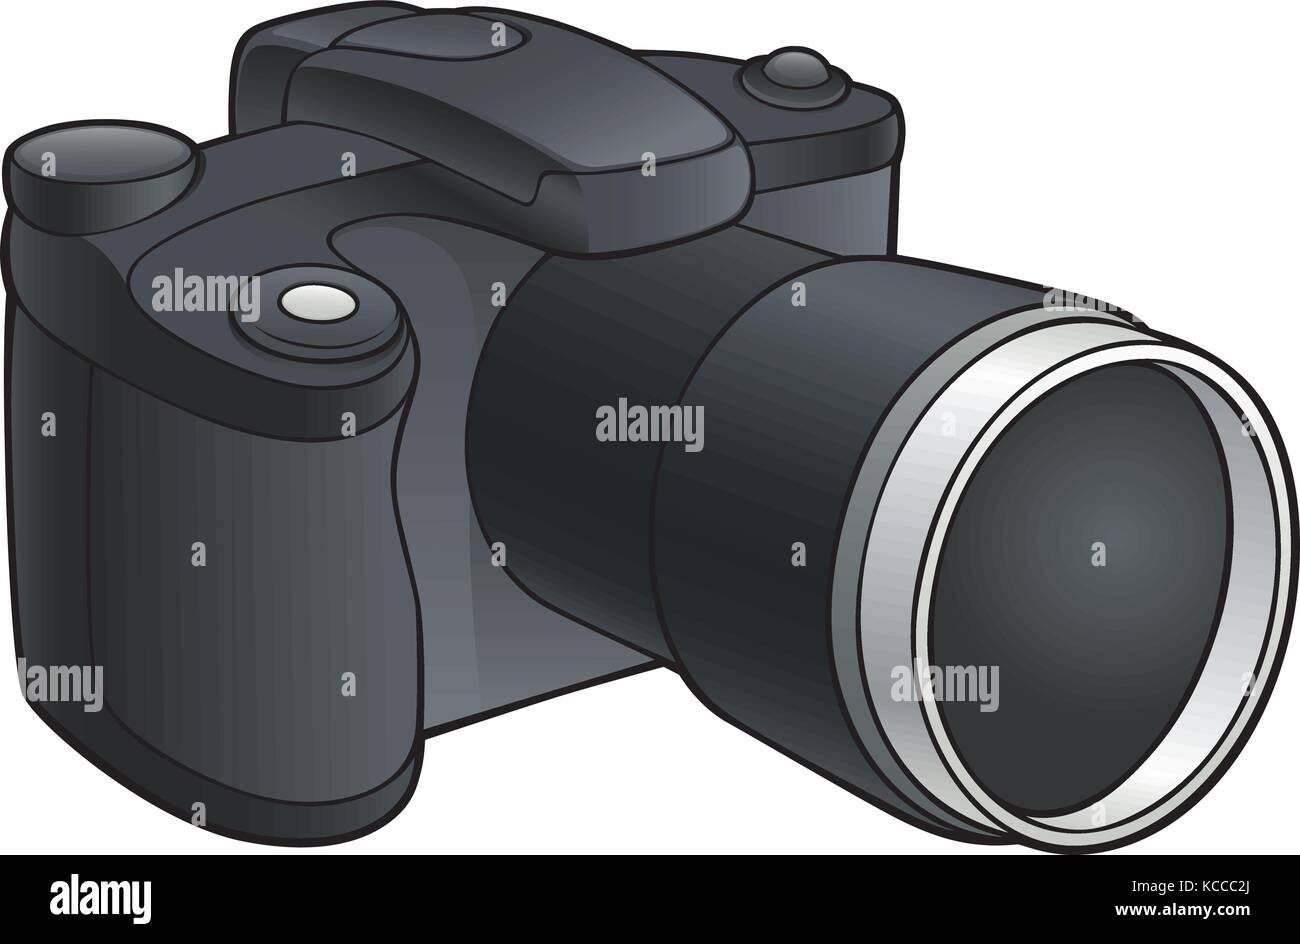 Vector illustration of digital camera with zoom lens - Stock Image